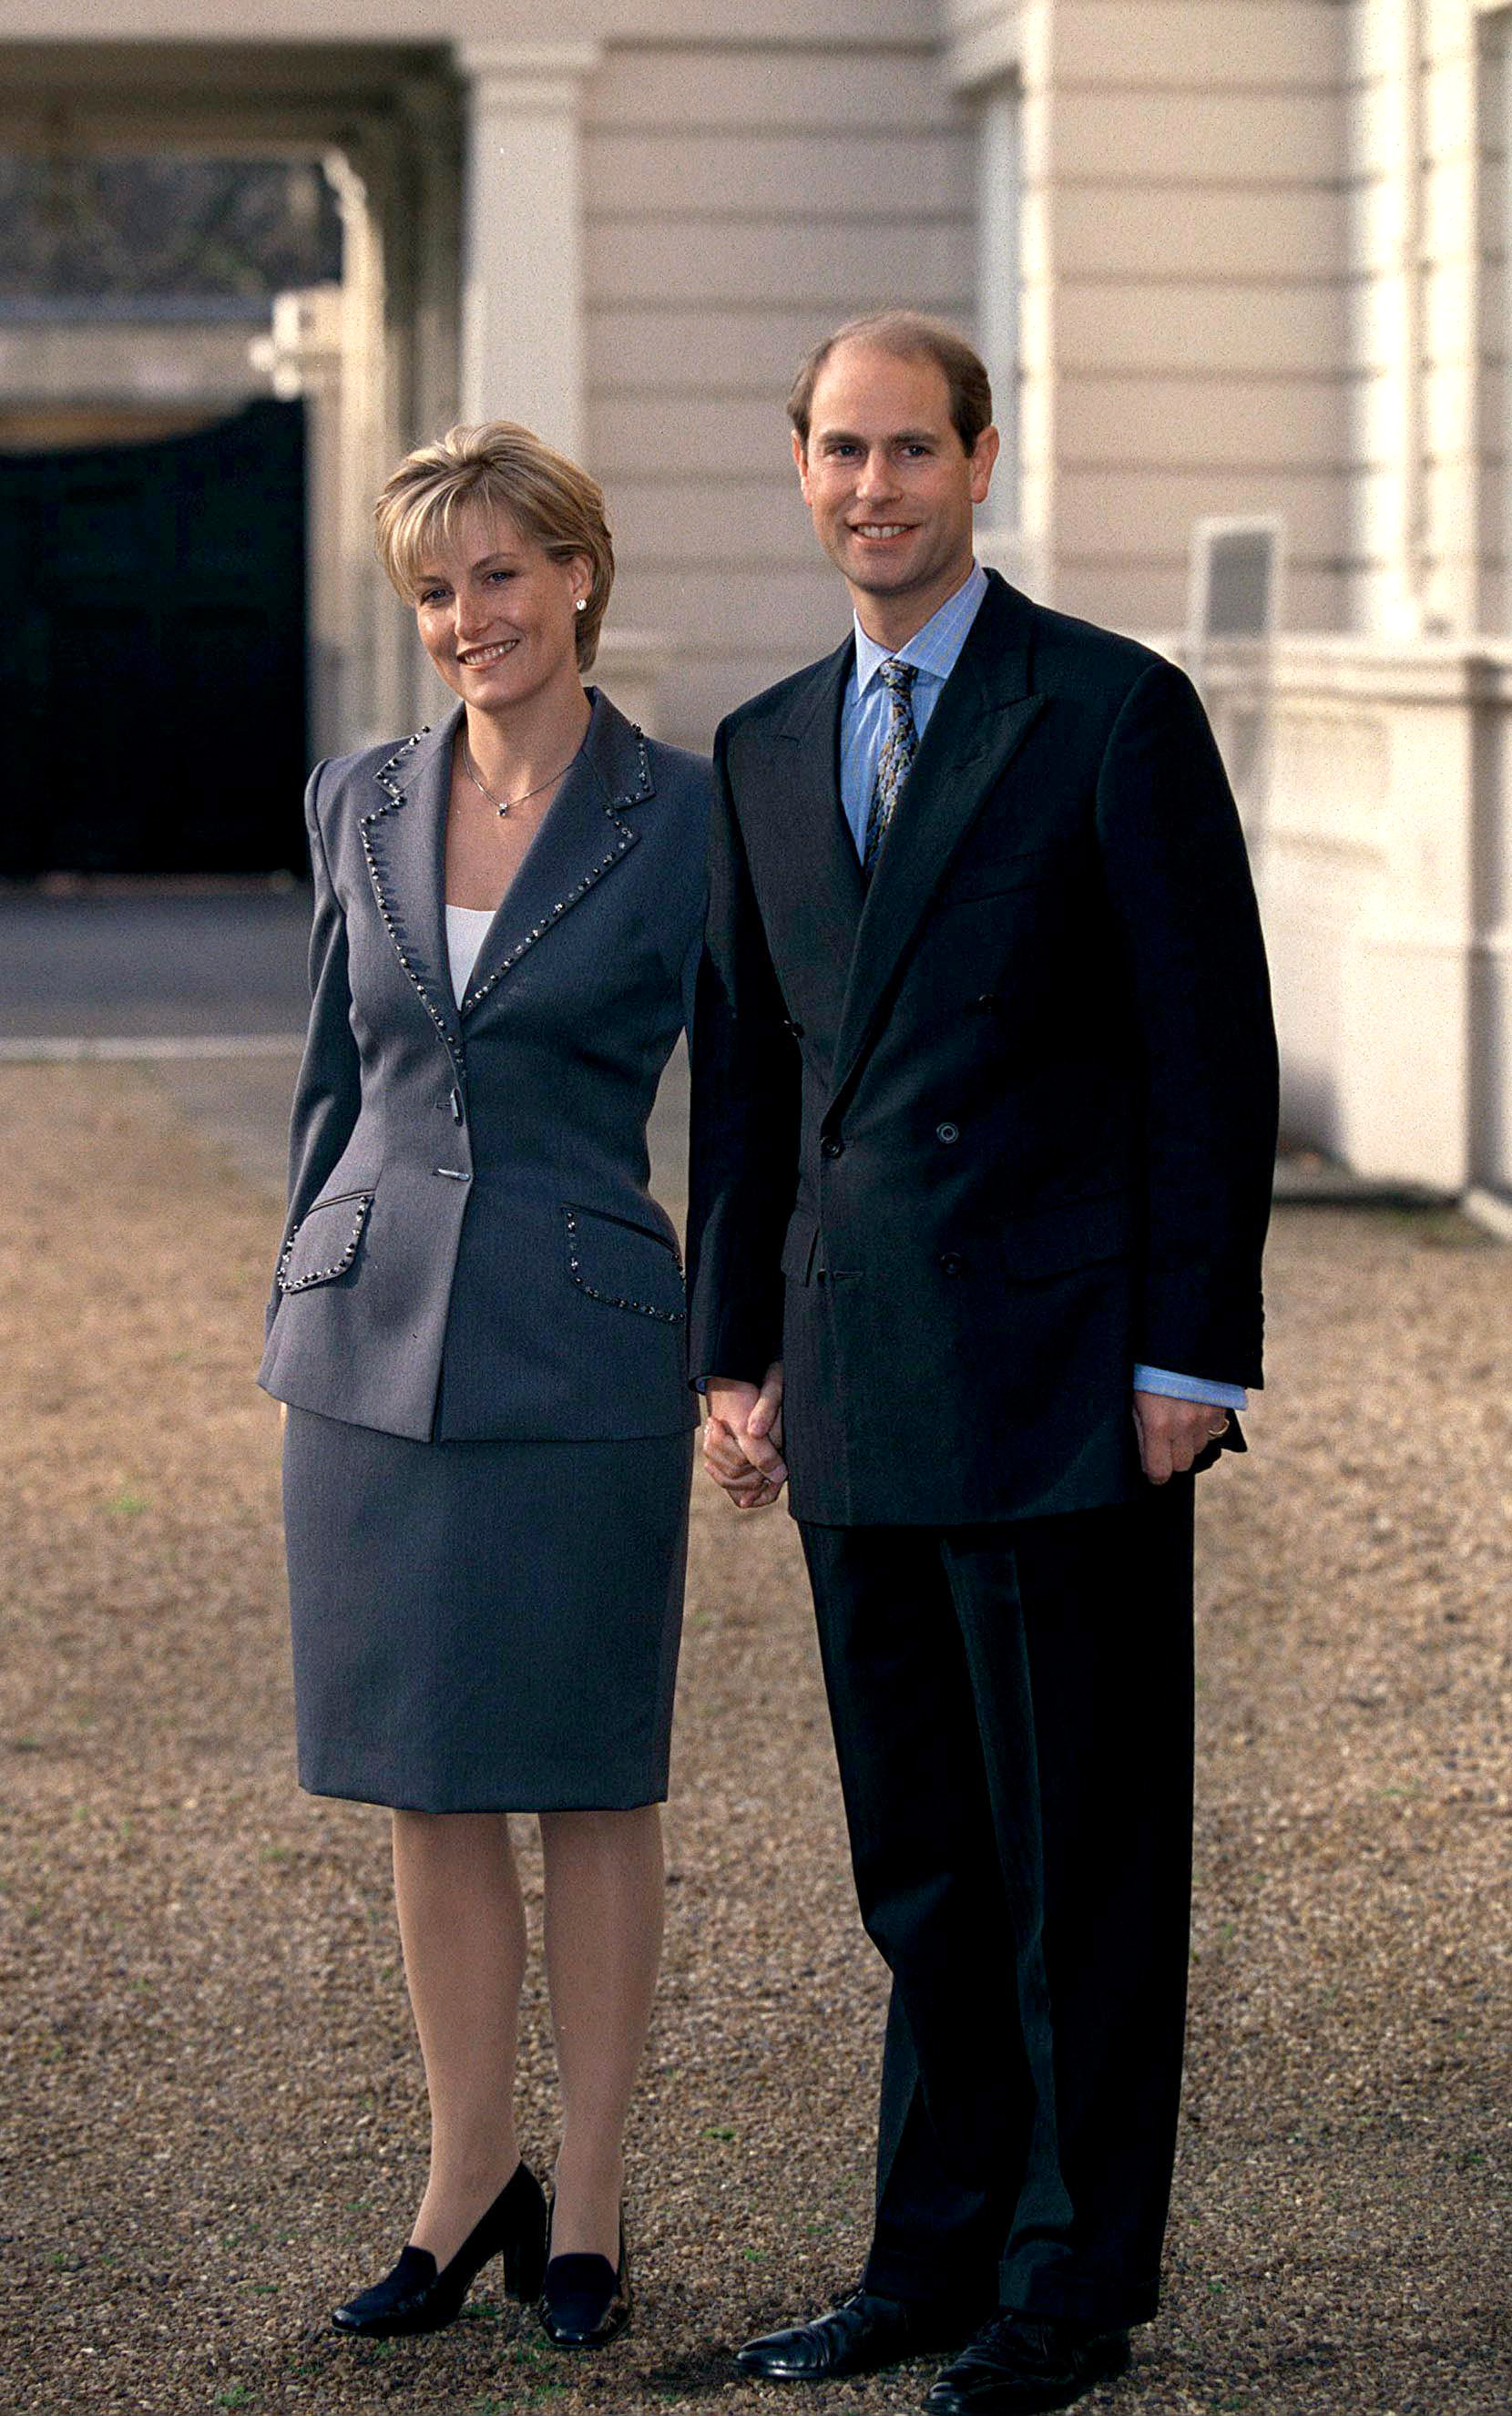 Prince Edward and Sophie Rhys-Jones engagement photo